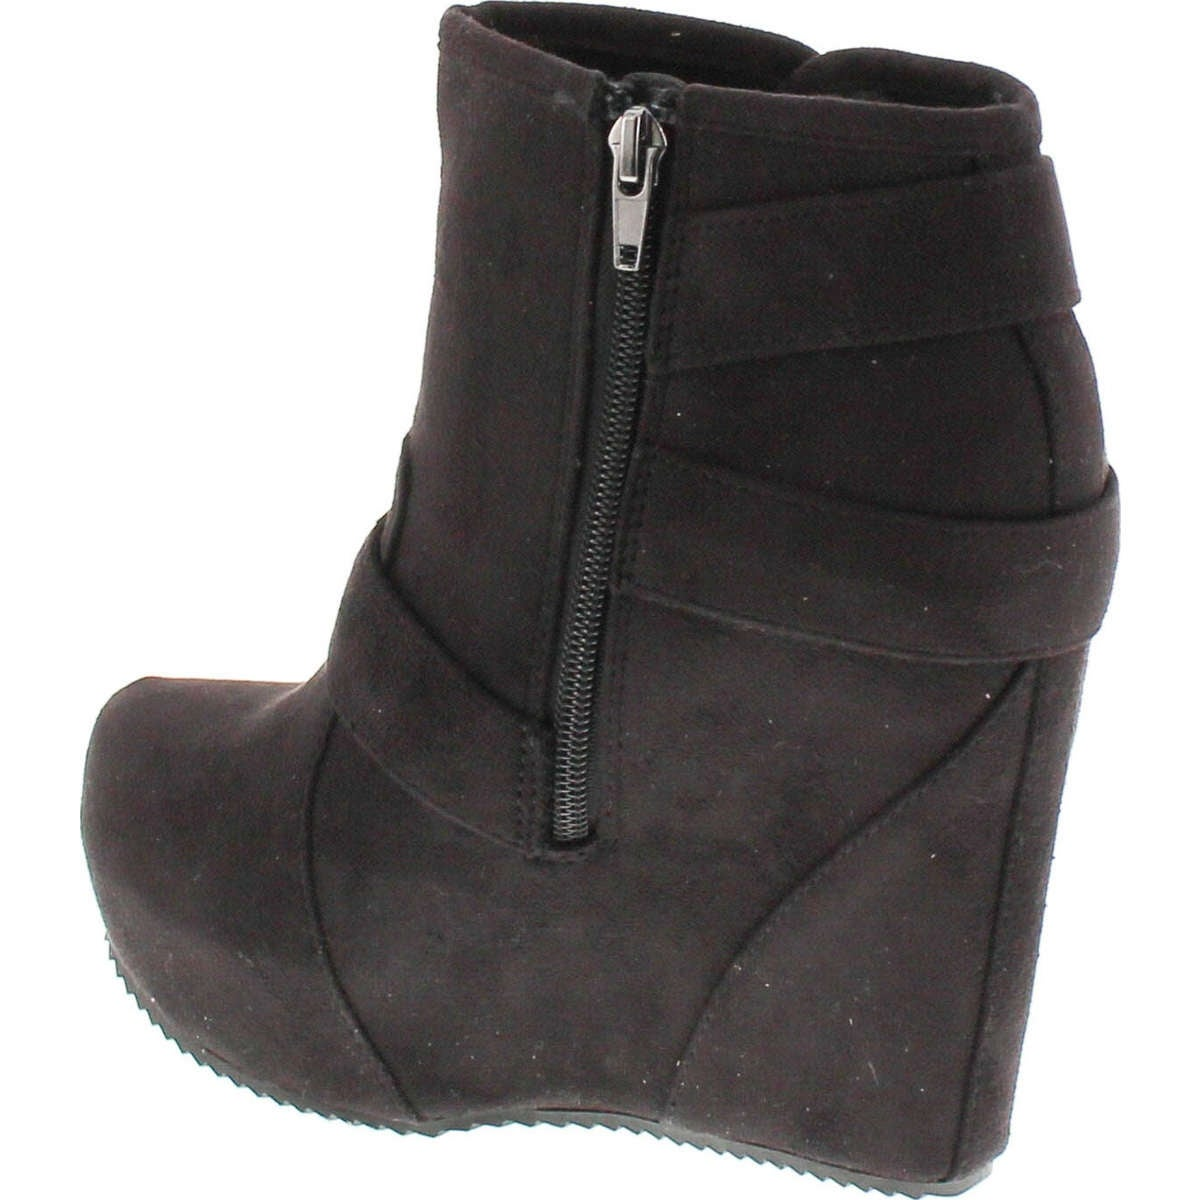 1333e49bb20ef Shop Soda Women's Besso Faux Suede Triple Buckle Platform Wedge Ankle  Bootie Boot - Free Shipping On Orders Over $45 - Overstock - 14756492